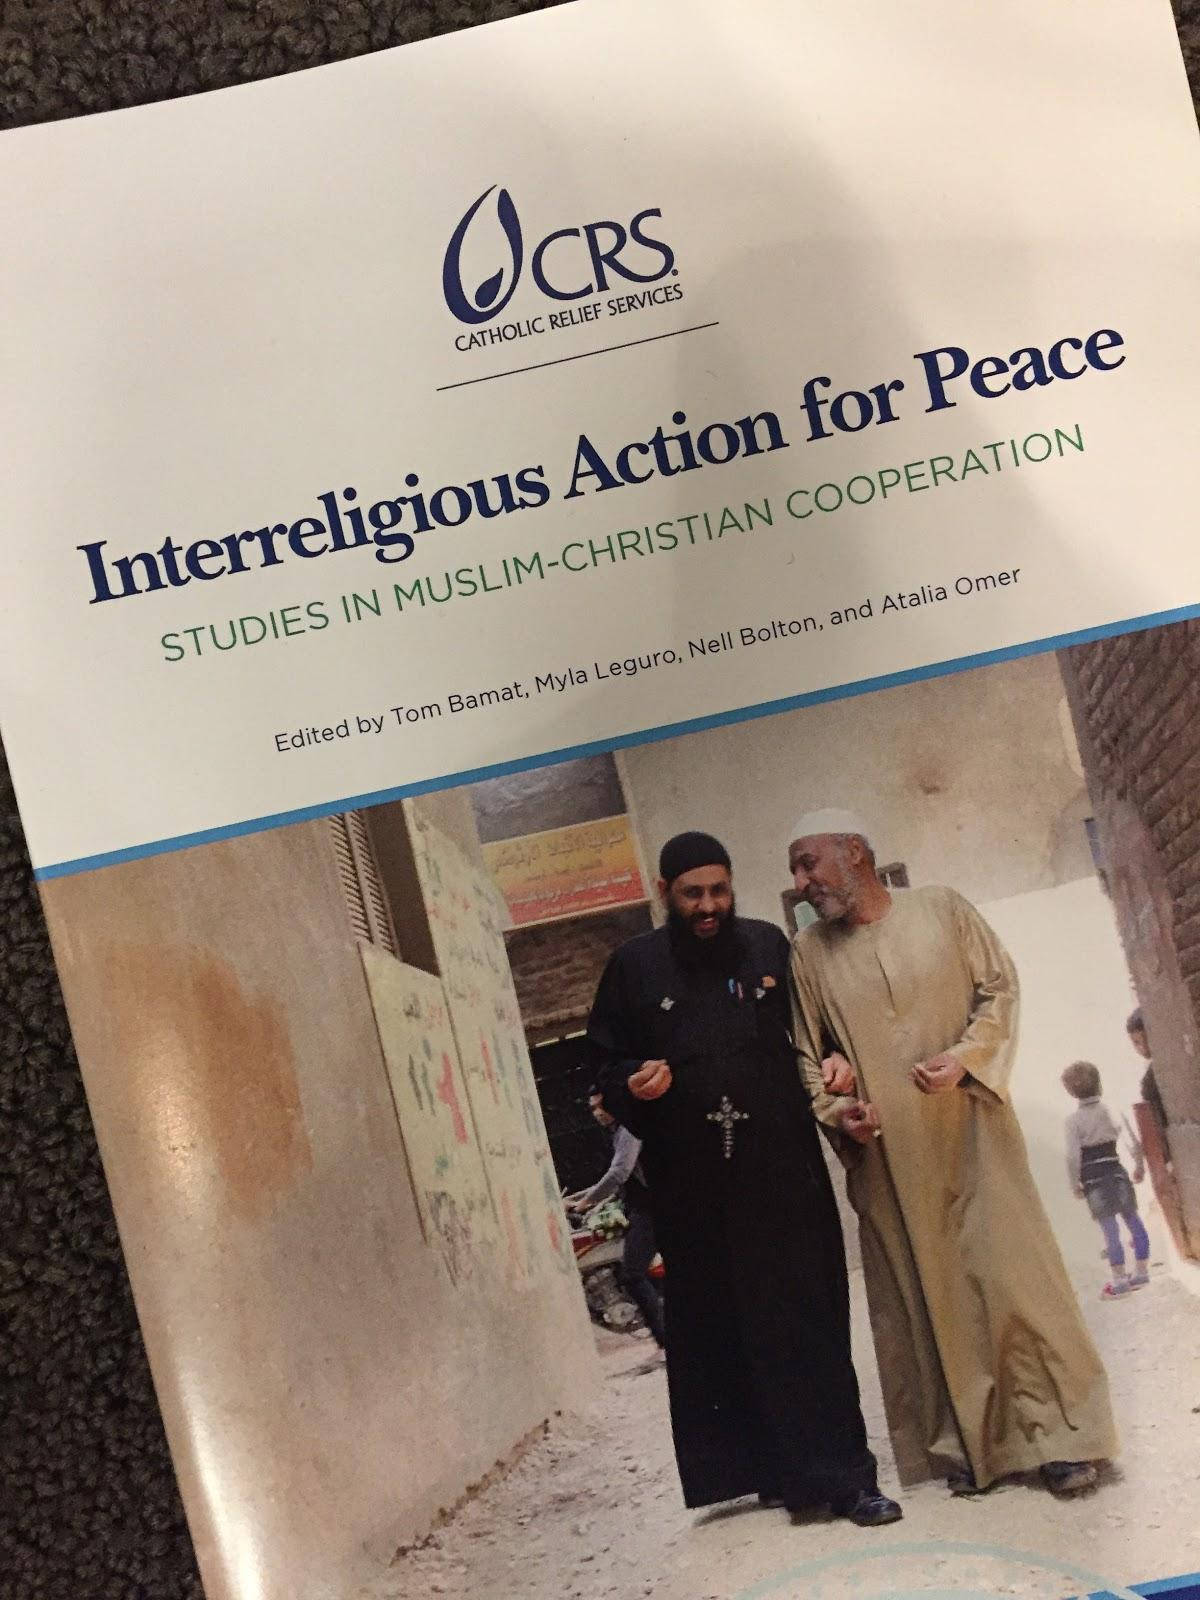 Catholic Relief Services Releases Book on Muslim-Christian Peacemaking